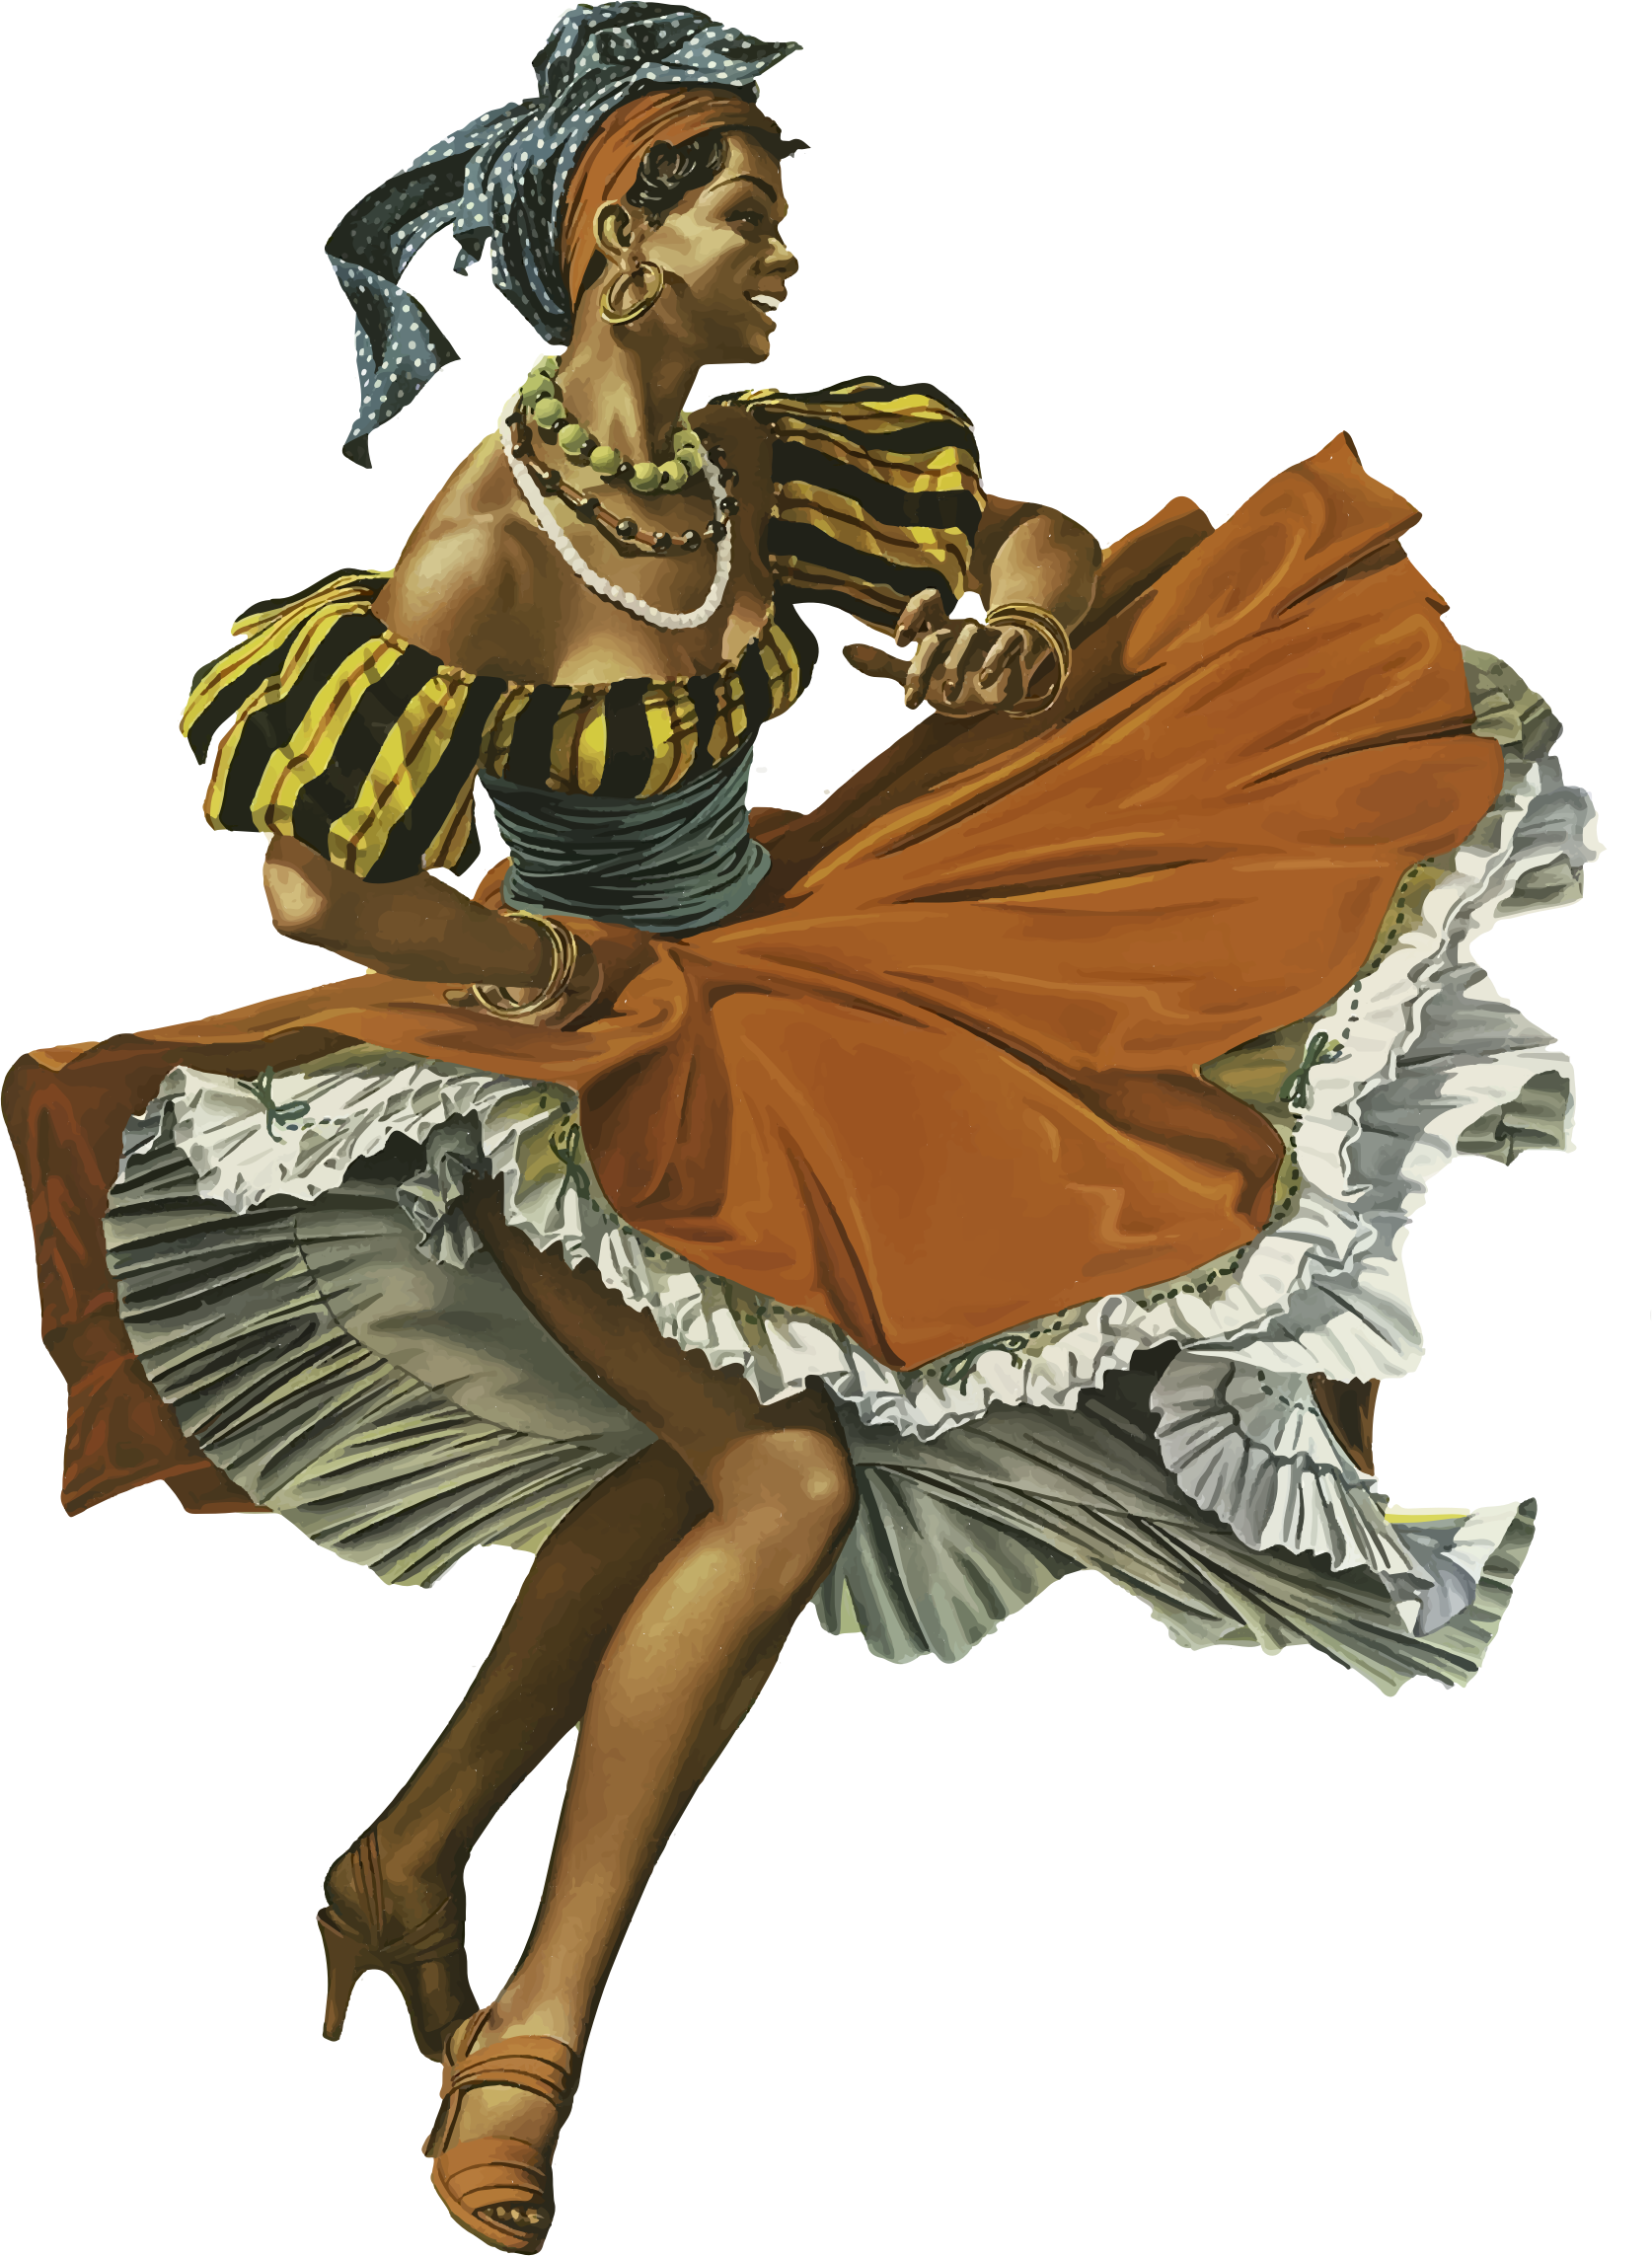 Caribbean woman big image. Dancing clipart vintage png black and white library